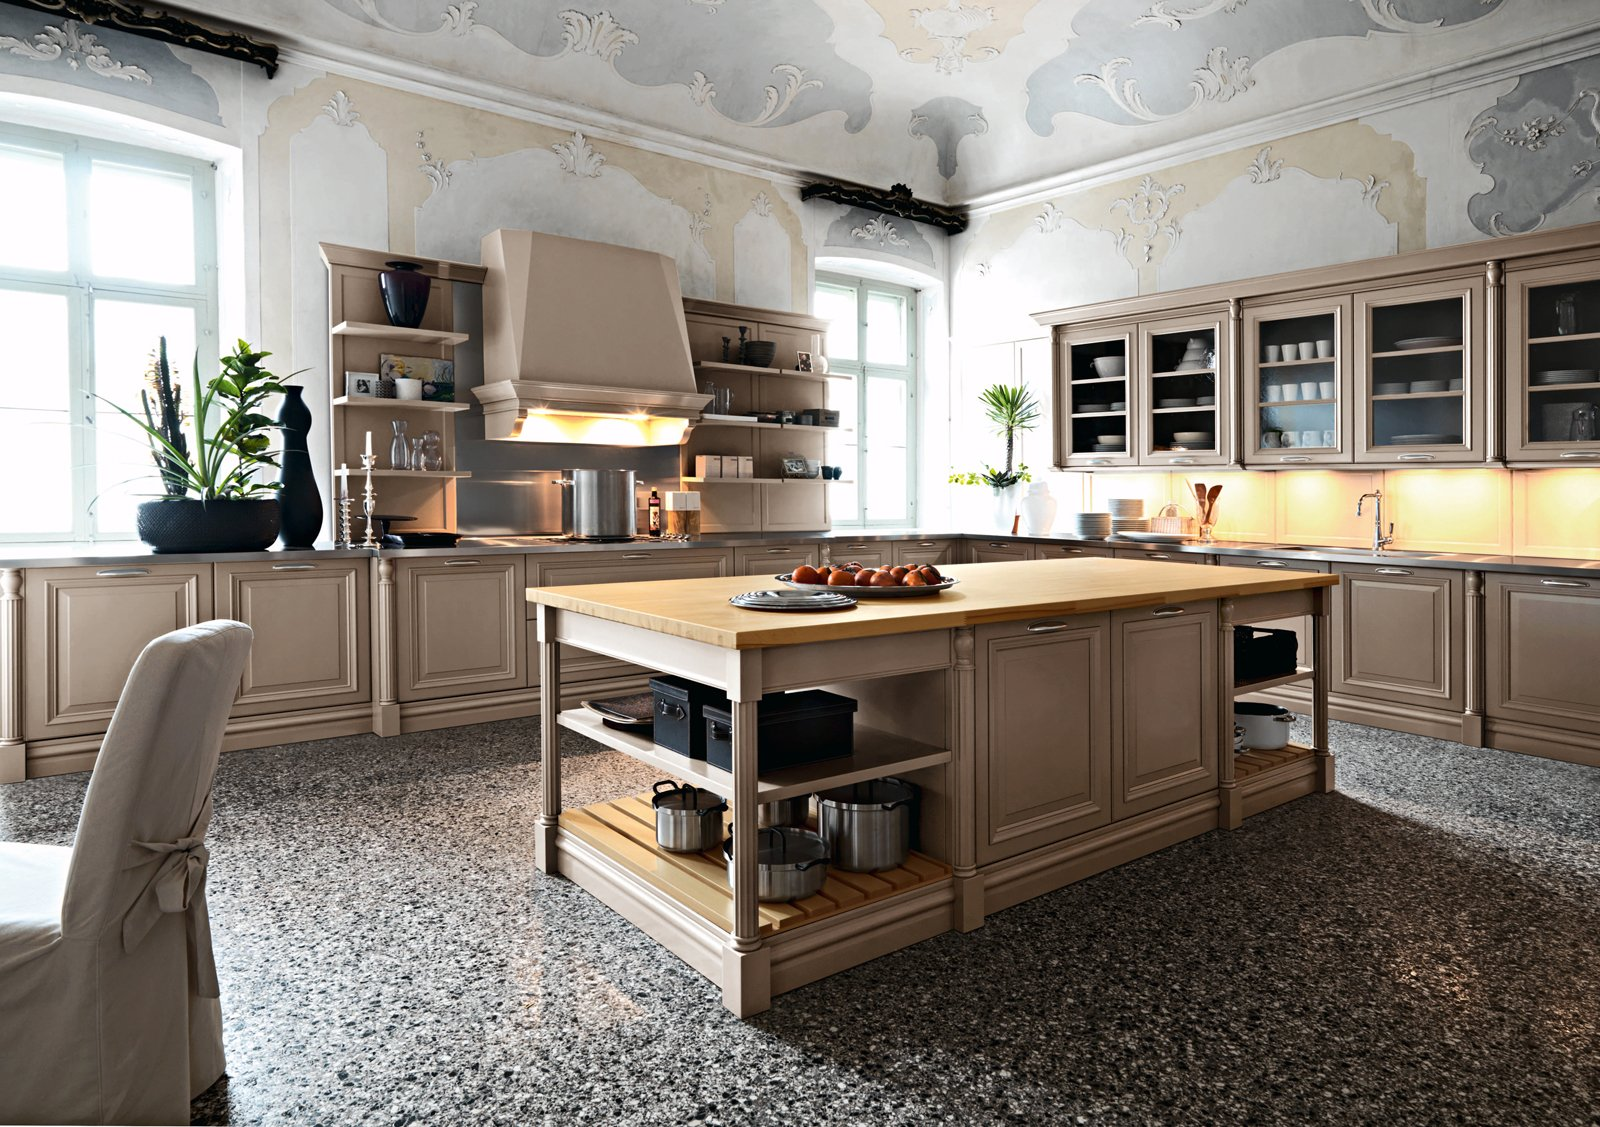 Cucine Laccate Mondo Convenienza Pictures To Pin On Pinterest #856D46 1600 1127 Planner Cucina Mondo Convenienza